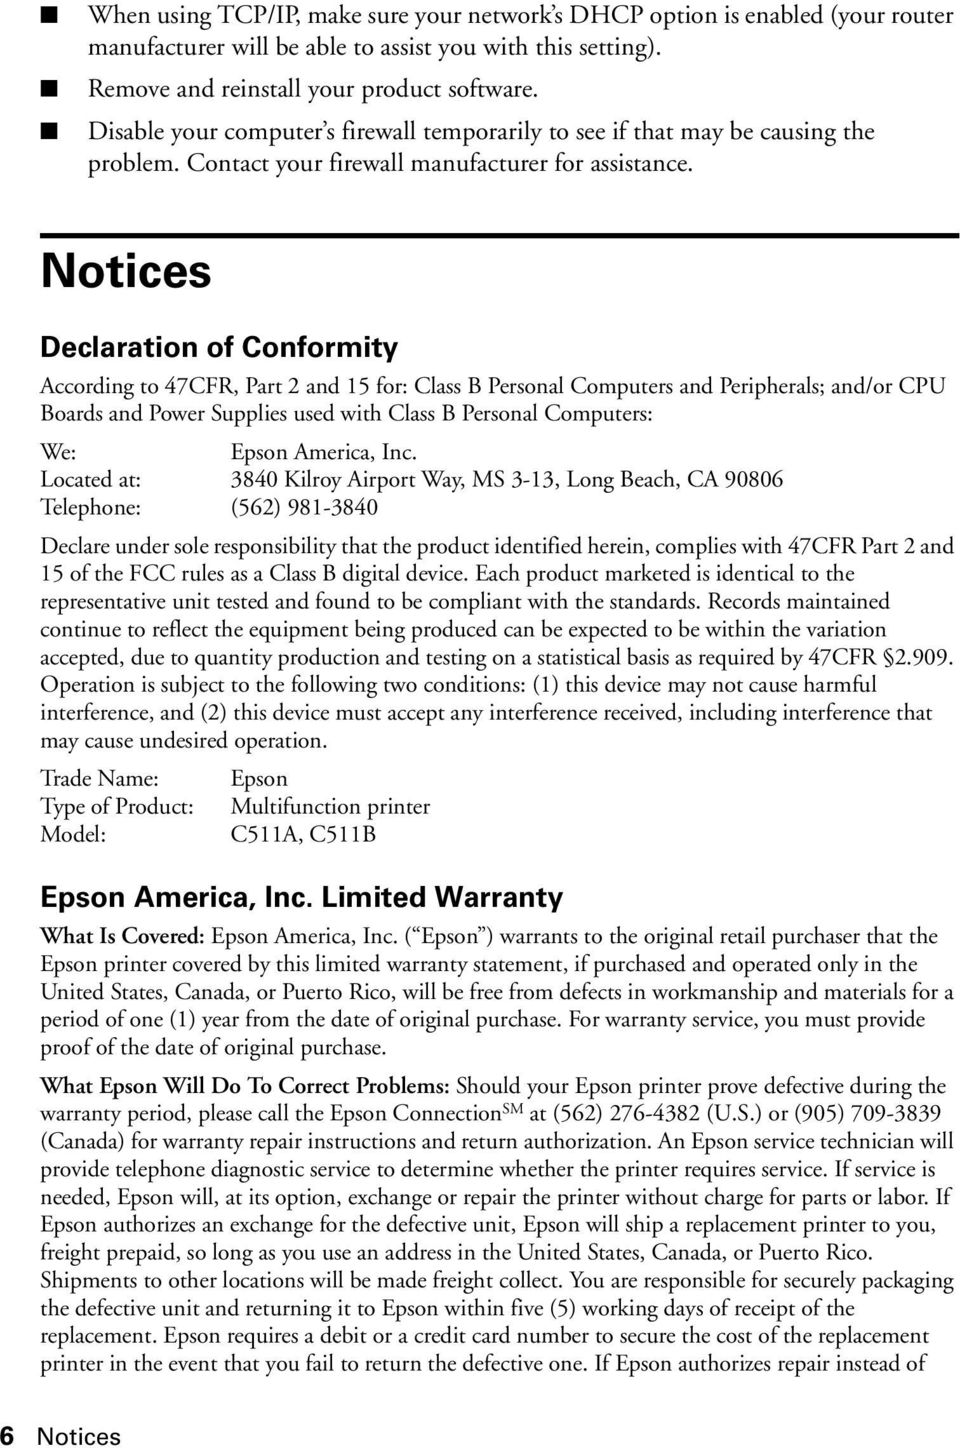 Notices Declaration of Conformity According to 47CFR, Part 2 and 15 for: Class B Personal Computers and Peripherals; and/or CPU Boards and Power Supplies used with Class B Personal Computers: We: